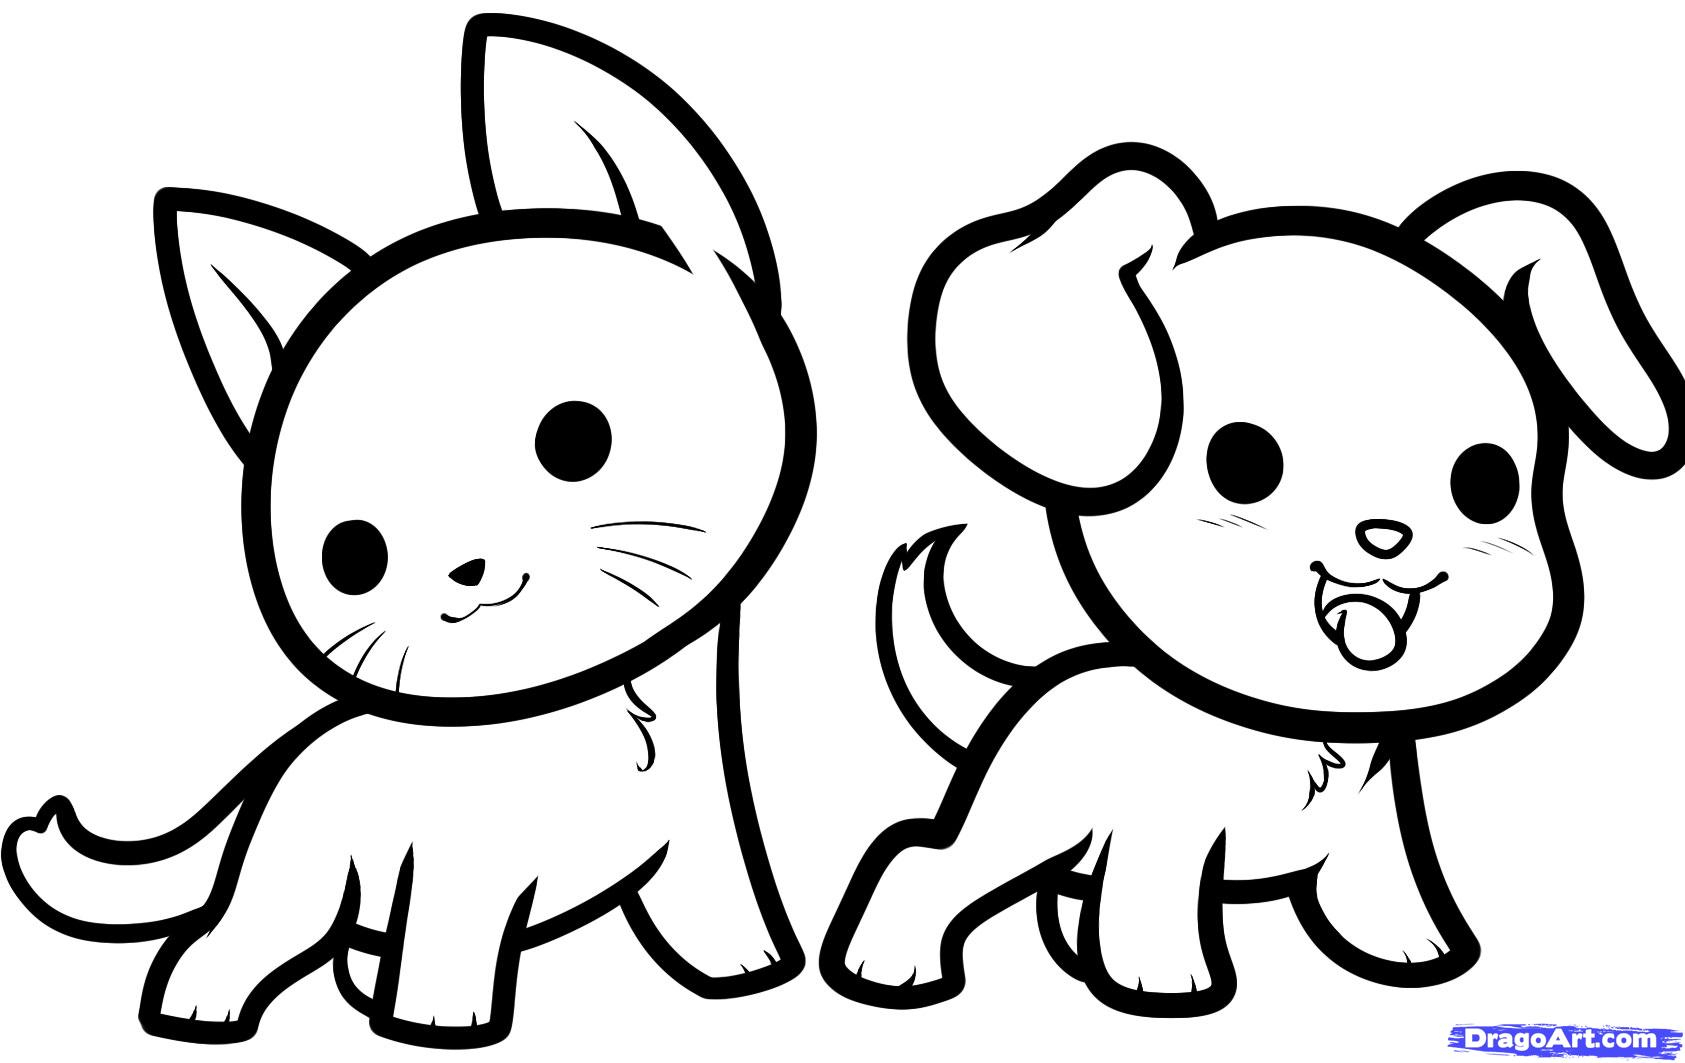 1685x1063 Cute Easy Drawings Of Animals Cute Easy To Draw Animals